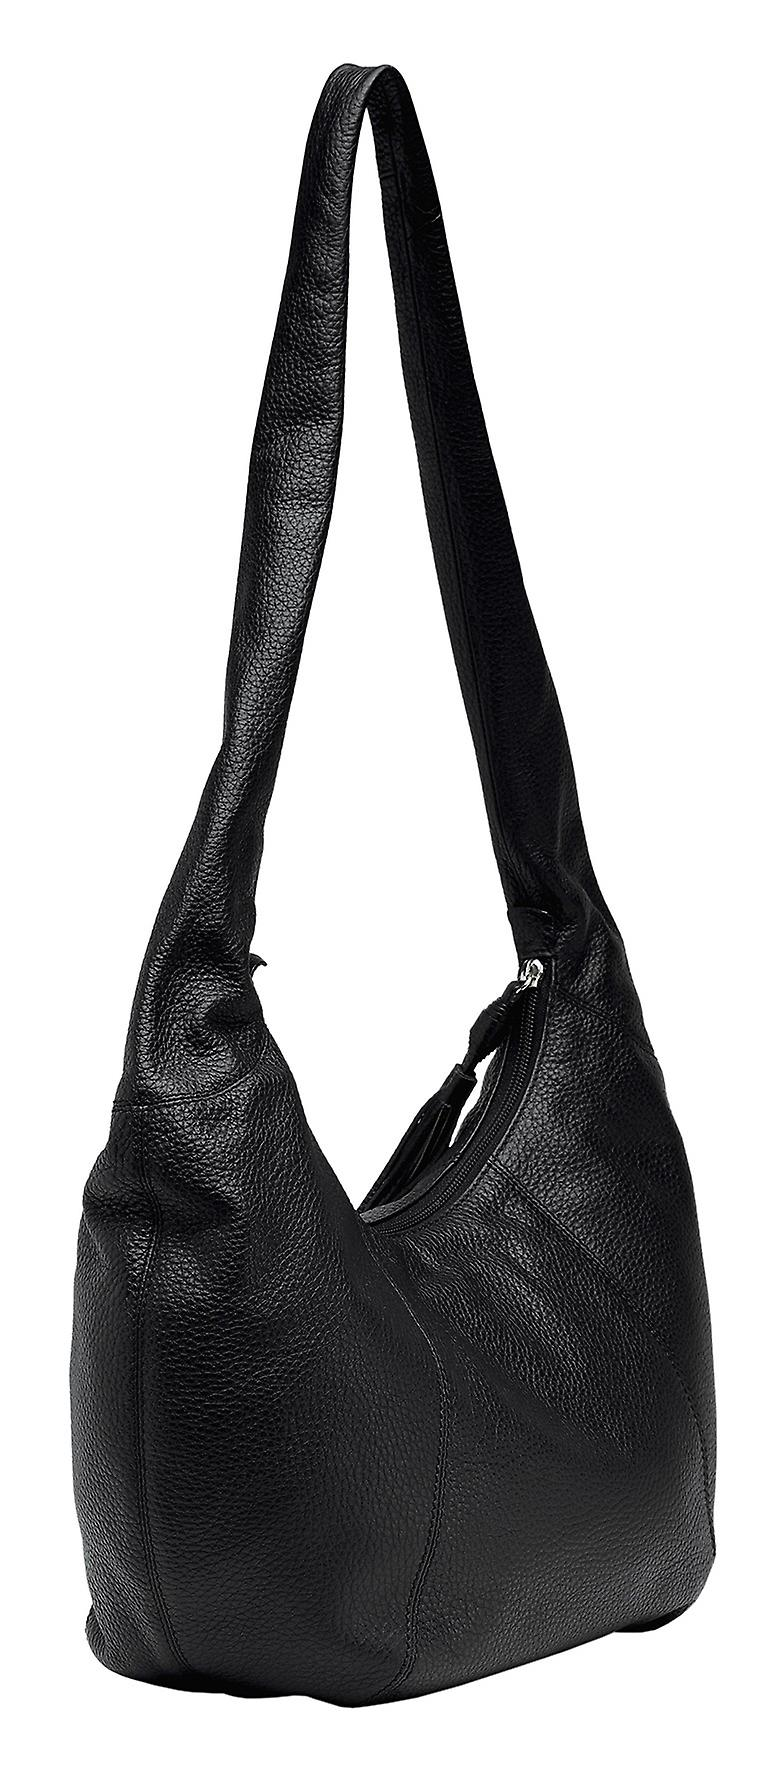 Burgmeister ladies shoulder bag T220-212 leather black